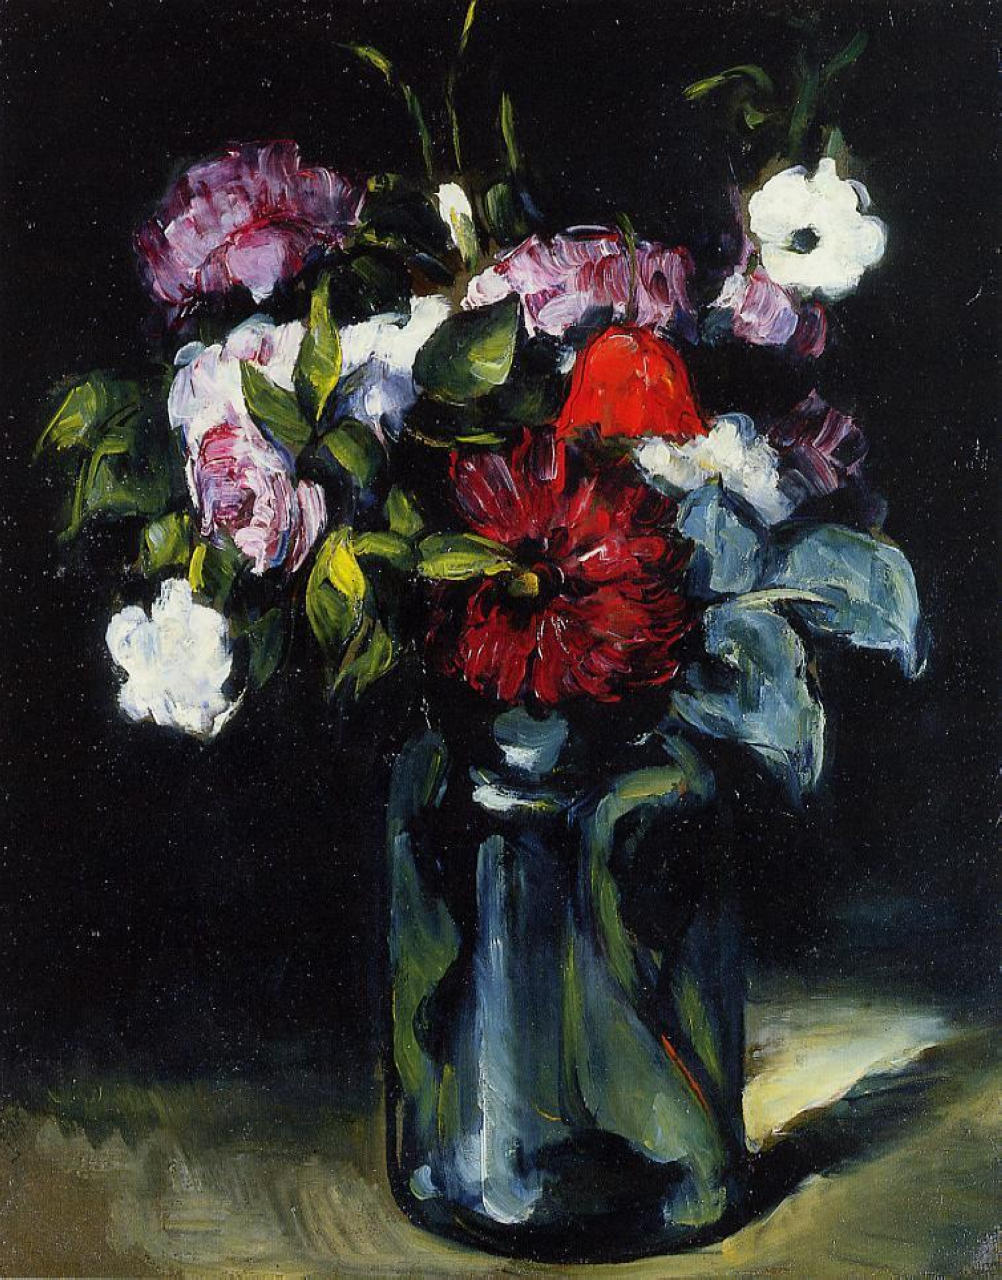 Flowers in a vase c1866 pierre auguste renoir wikiart reviewsmspy